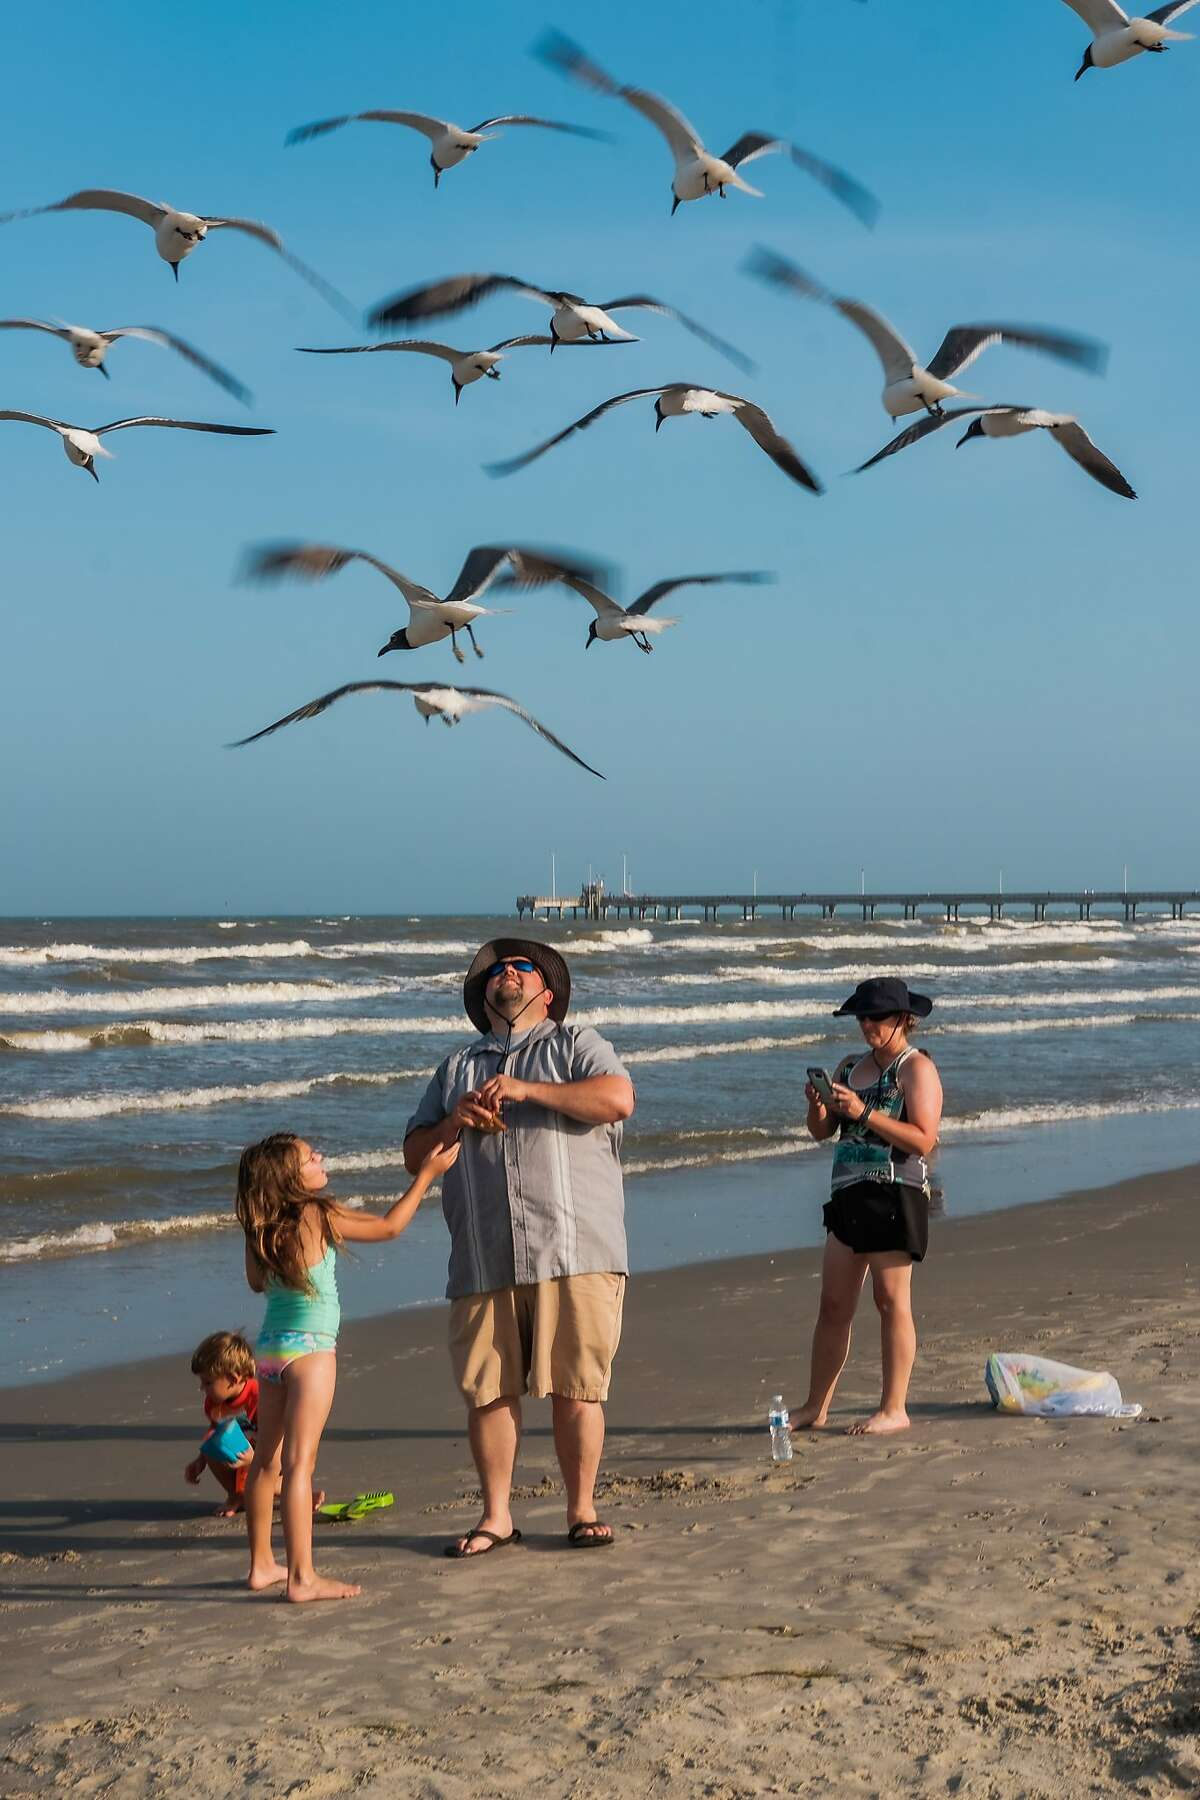 The Thornton family, visitors from Missouri, on the beach in Corpus Christi, Texas, July 7, 2020. Corpus Christi was largely spared in the early weeks of the pandemic; now the longtime south Texas beach destination has one of the fastest-growing outbreaks in the state, one driven largely by out-of-town visitors. (Christopher Lee/The New York Times)